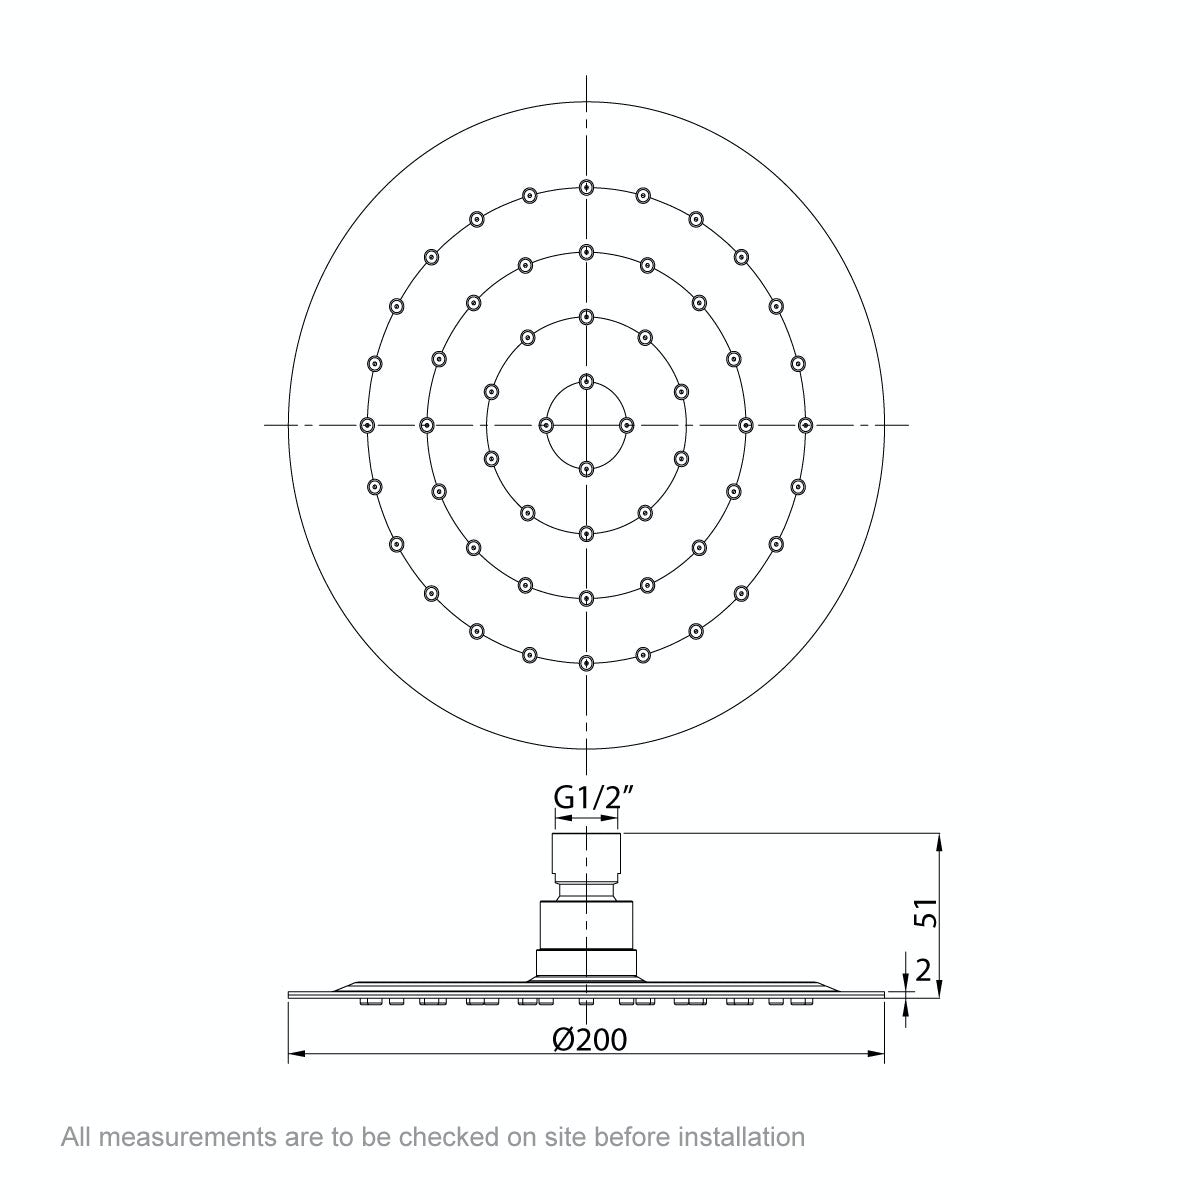 Dimensions for Mode Renzo round slim stainless steel shower head 200mm